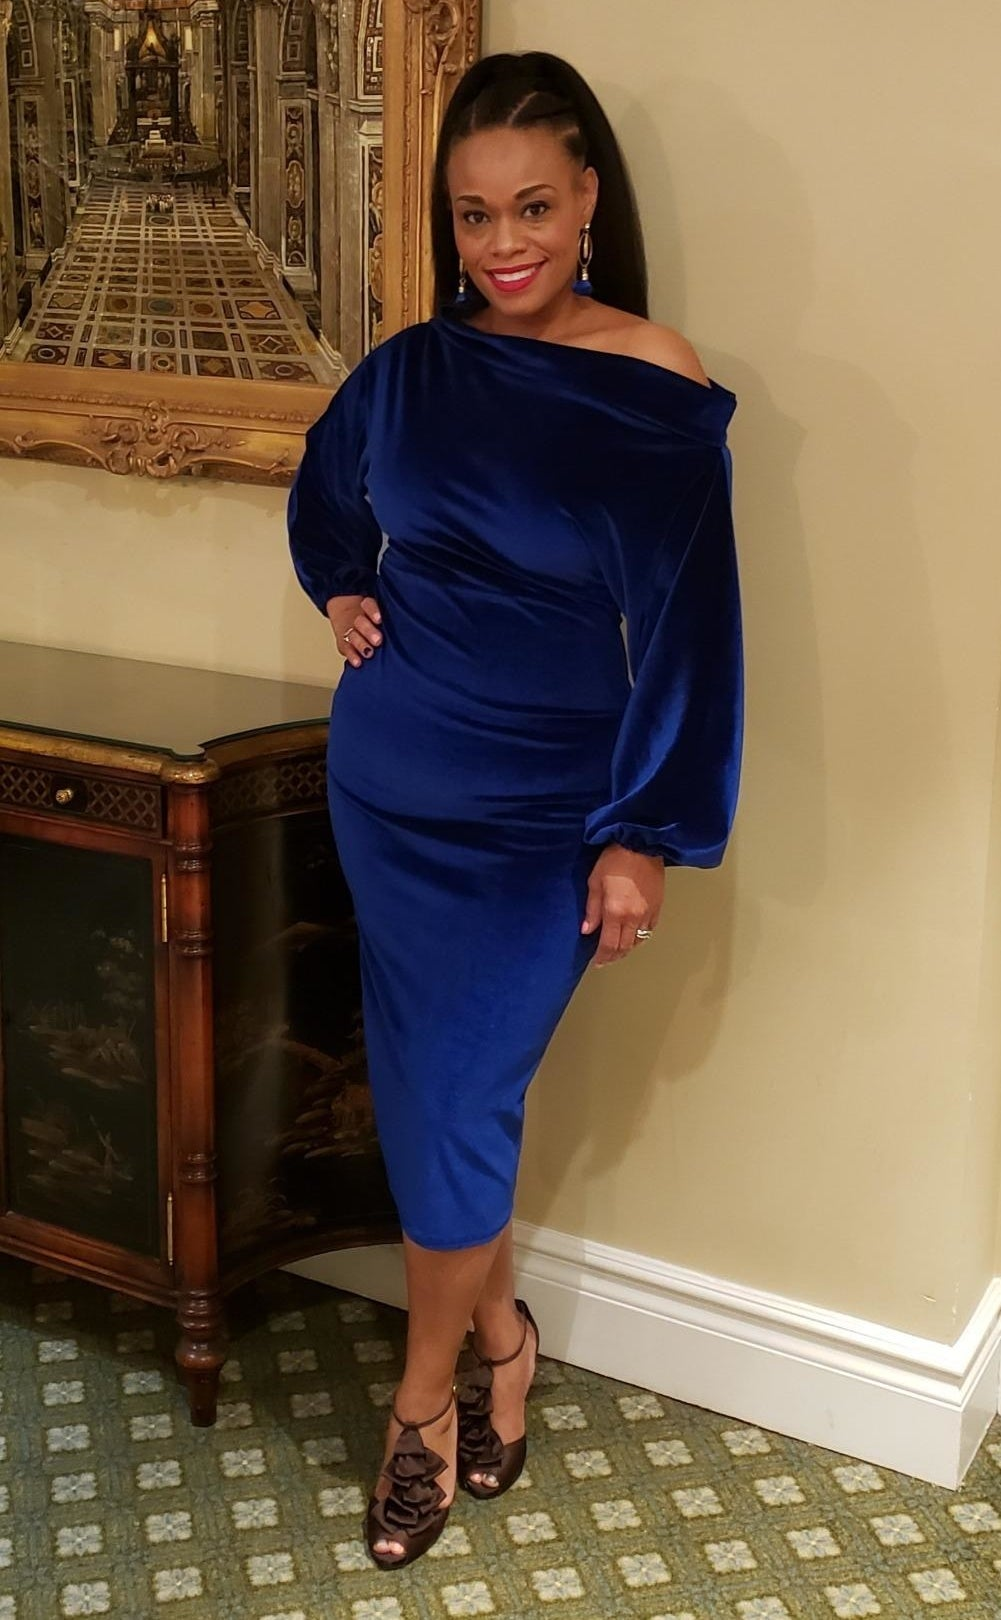 The dress in blue